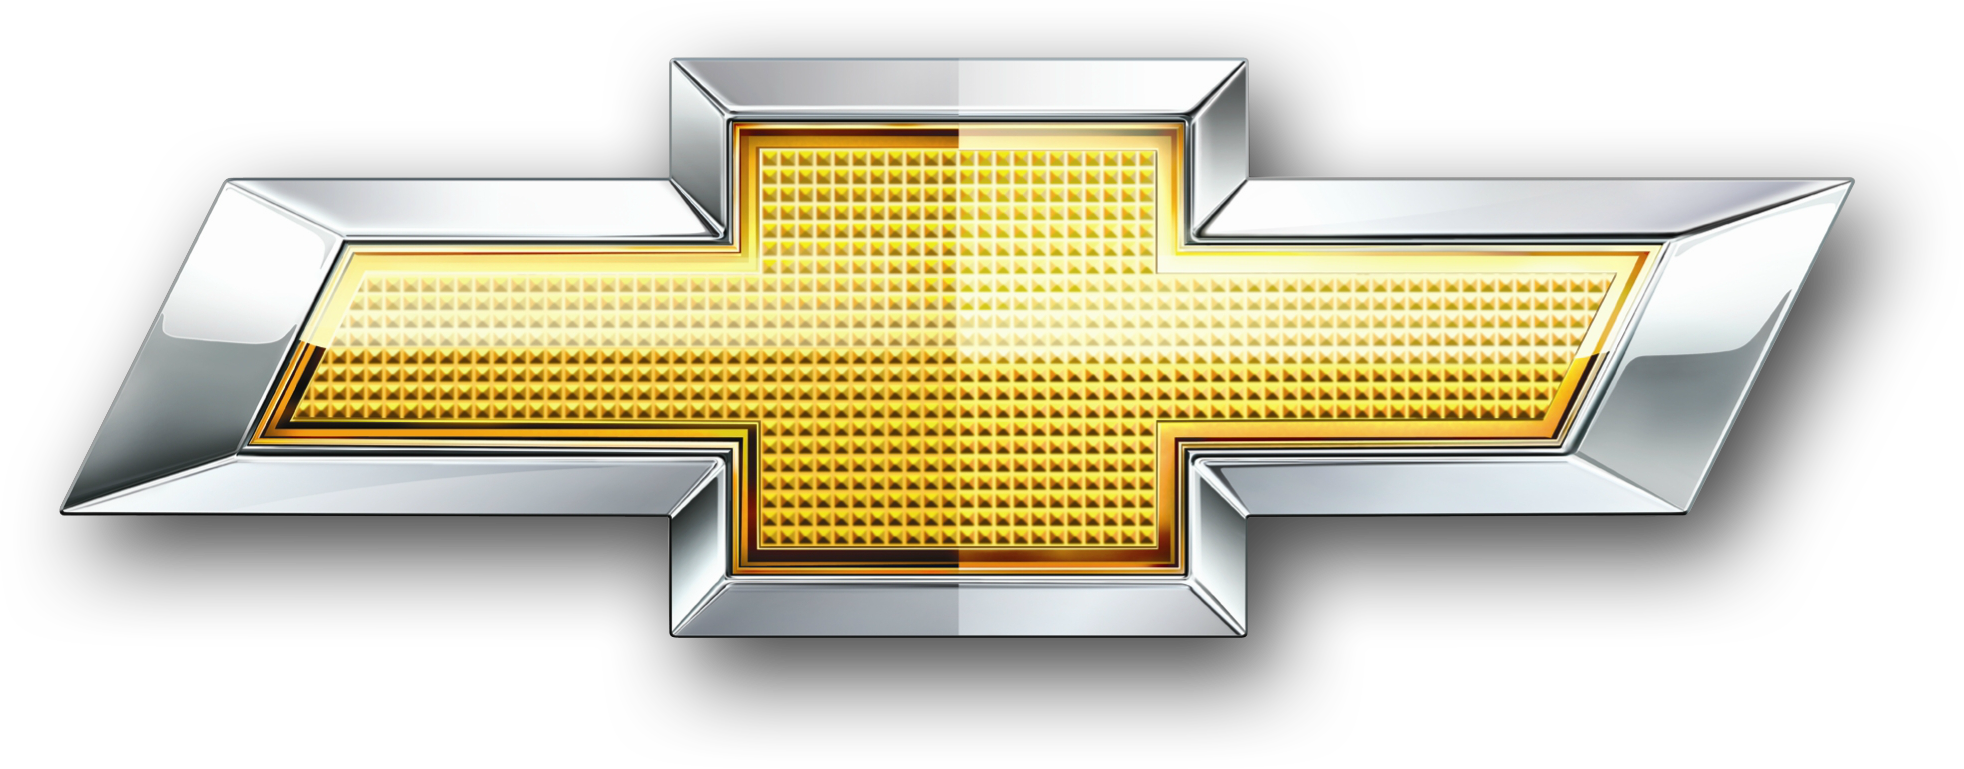 Chevy Bowtie Png Free Chevy Bowtie Png Transparent Images 53820 Pngio